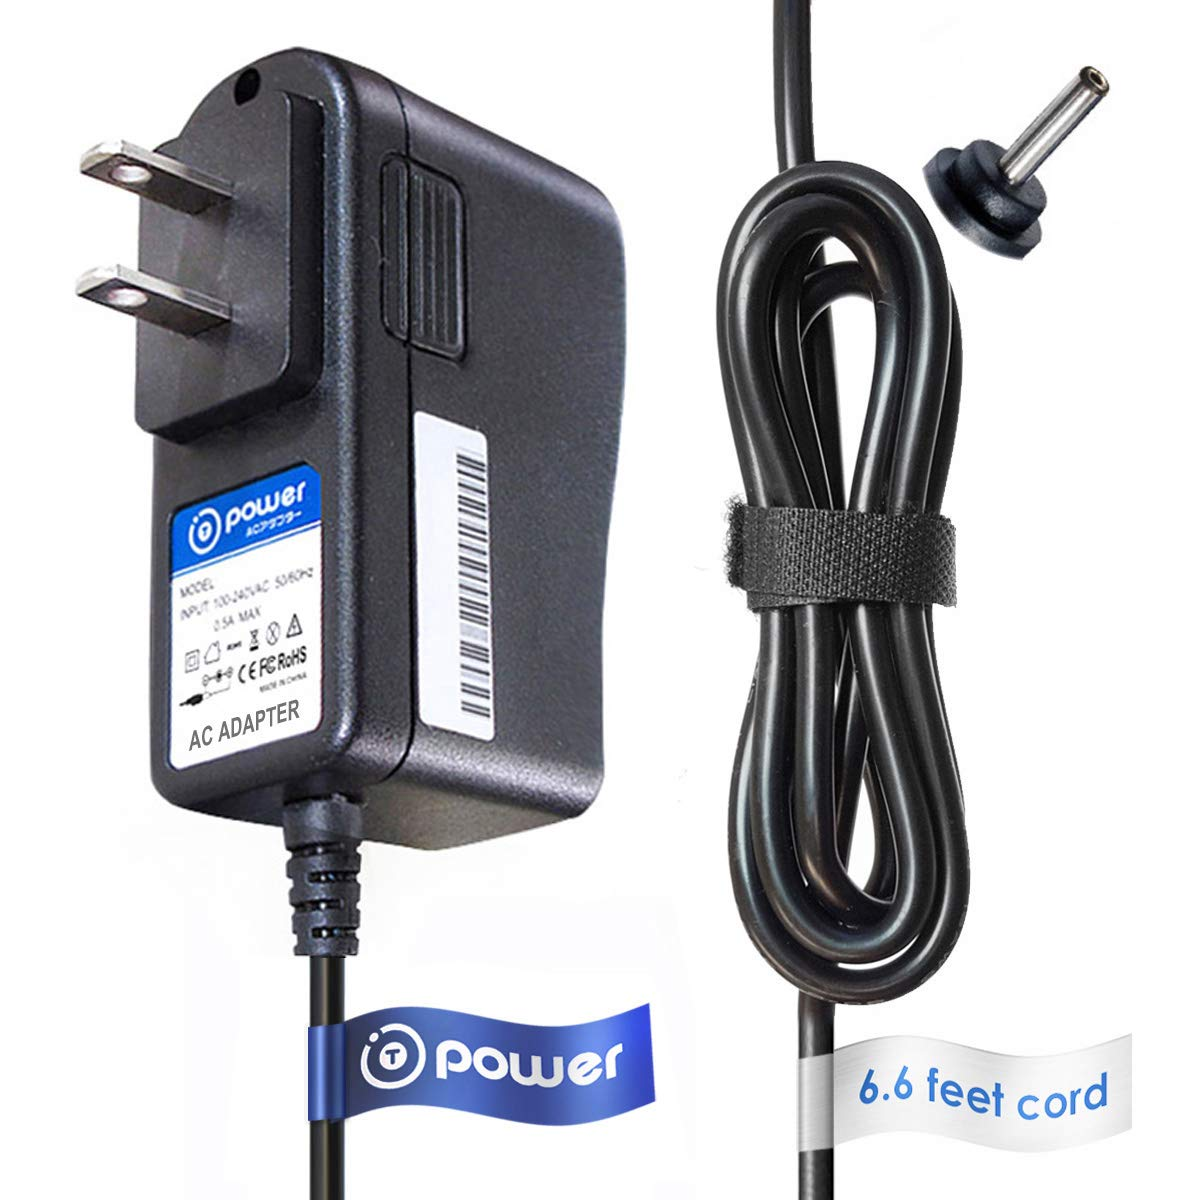 T-Power ( 6.6ft Long Cable ) AC Adapter fit FOR Sirius/XM Connect SXDPIP1/SDPIV1/XPVD1/XDPIV1 Replacement switching power supply cord charger wall plug spare